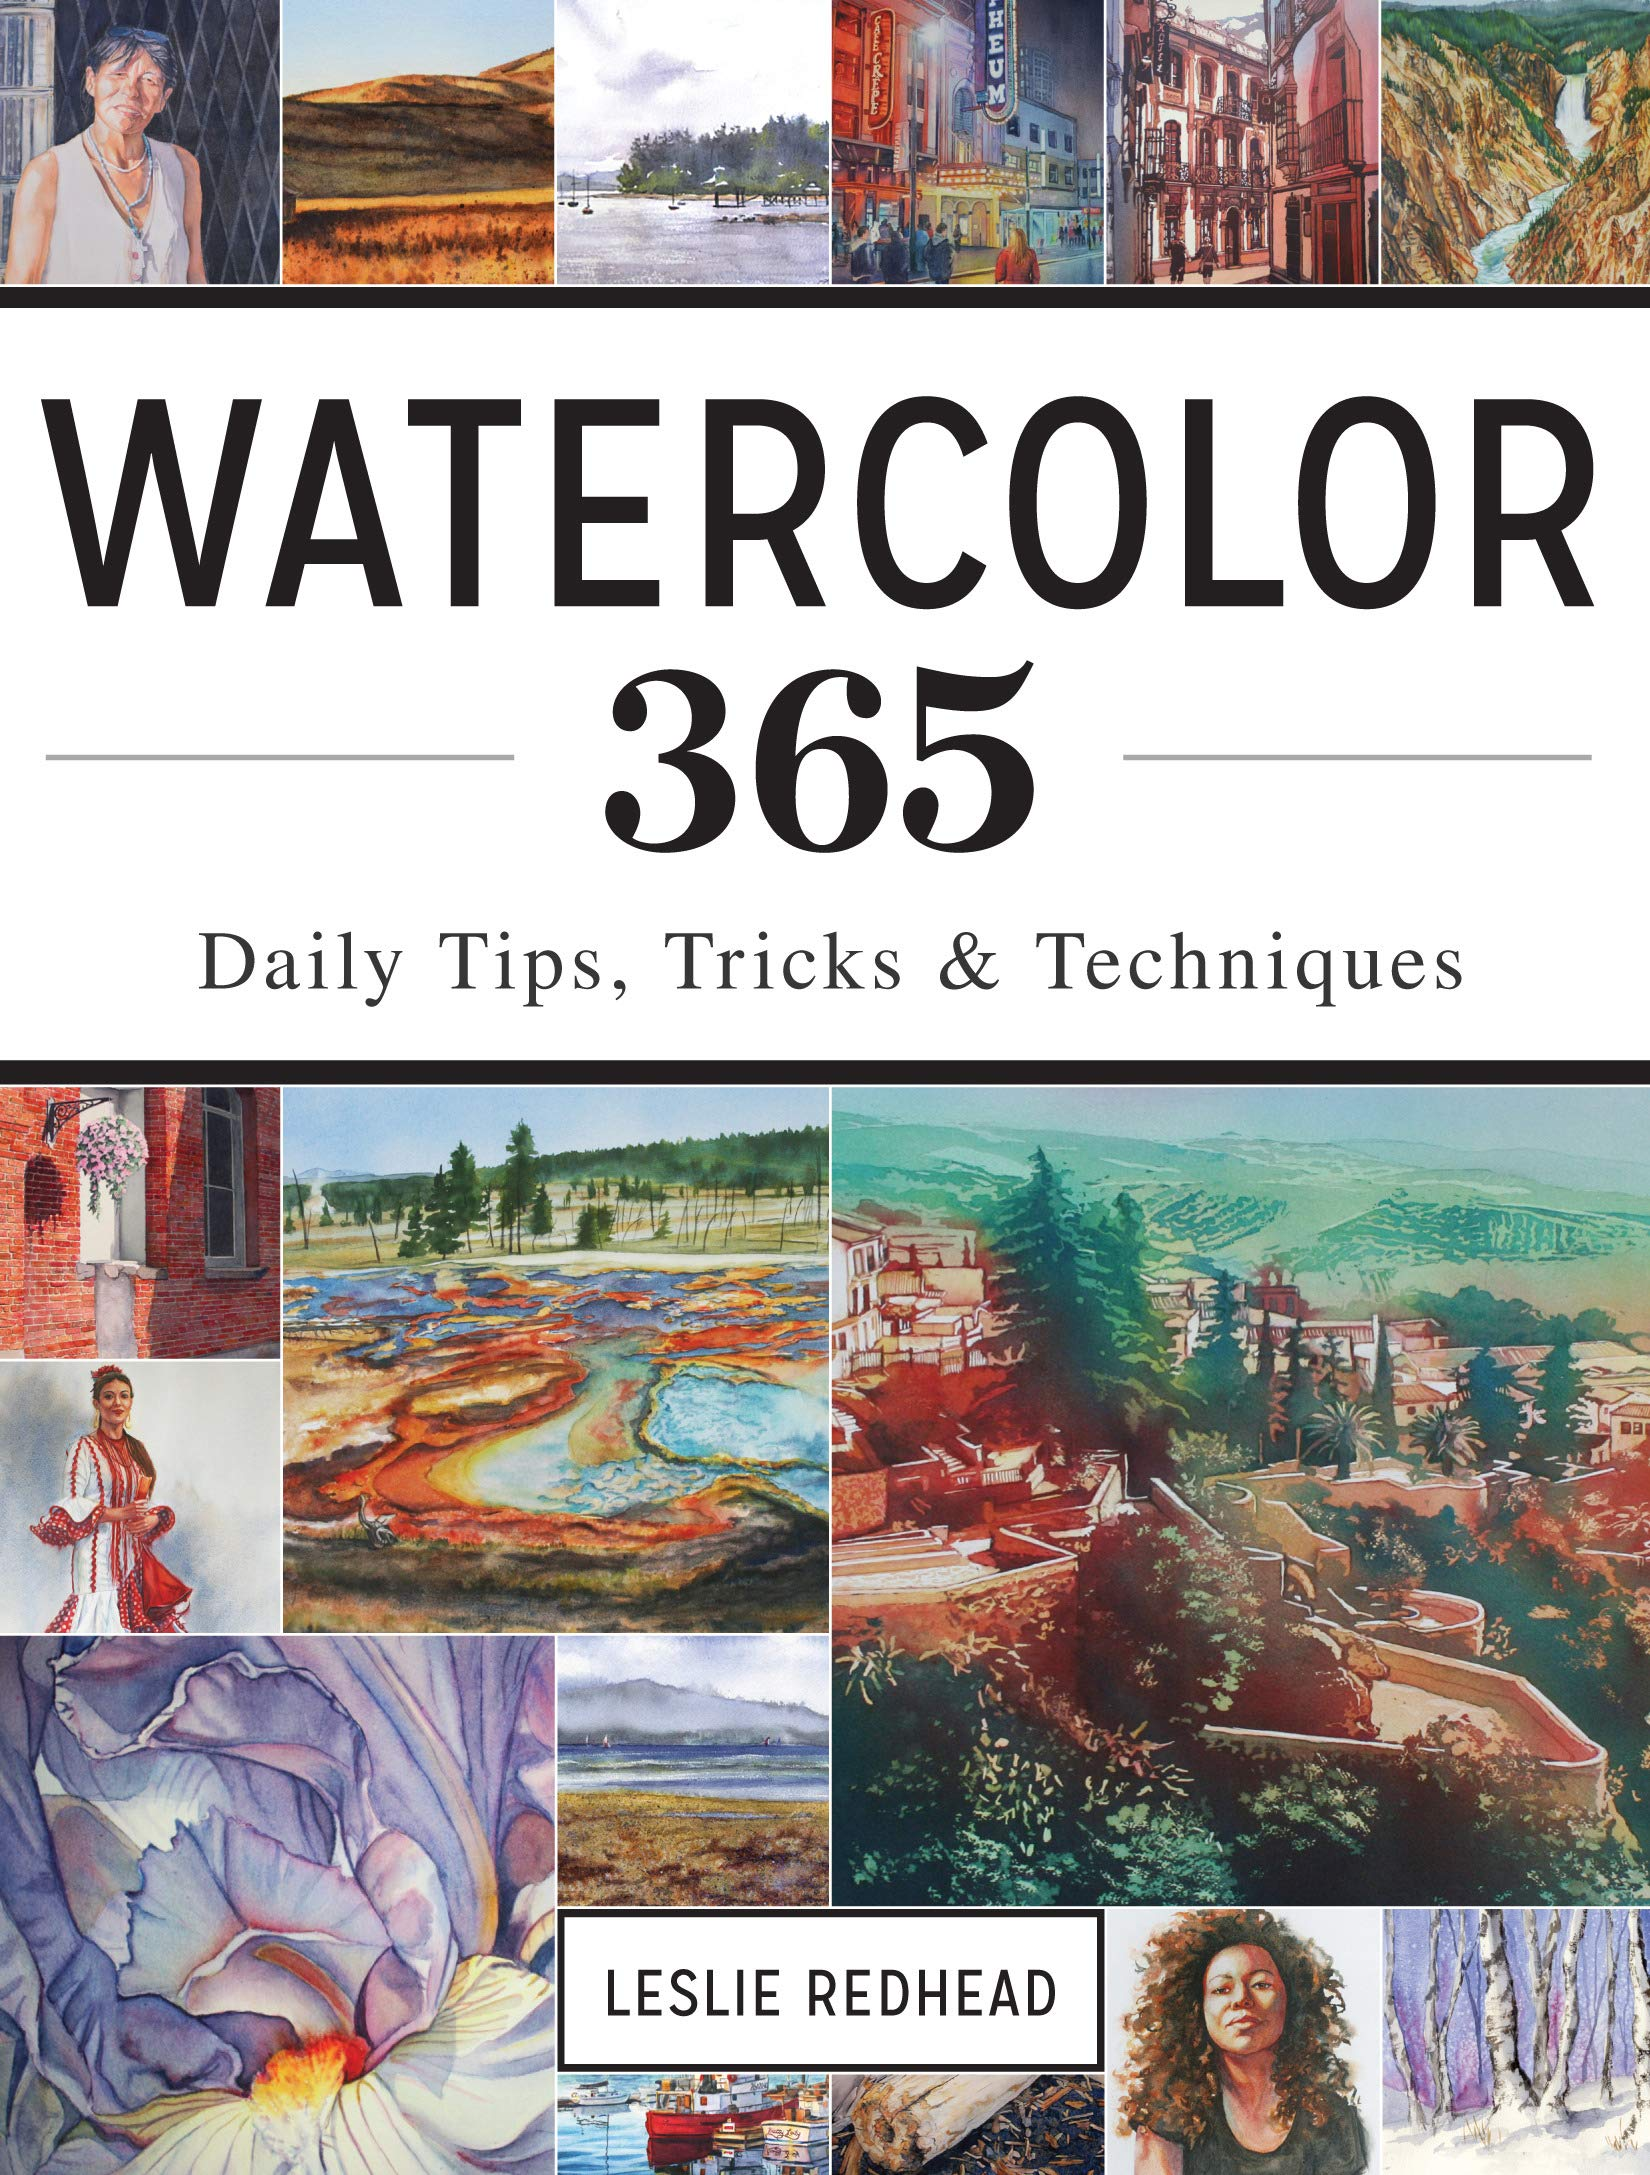 Watercolor 365 Daily Tips by Leslie Redhead